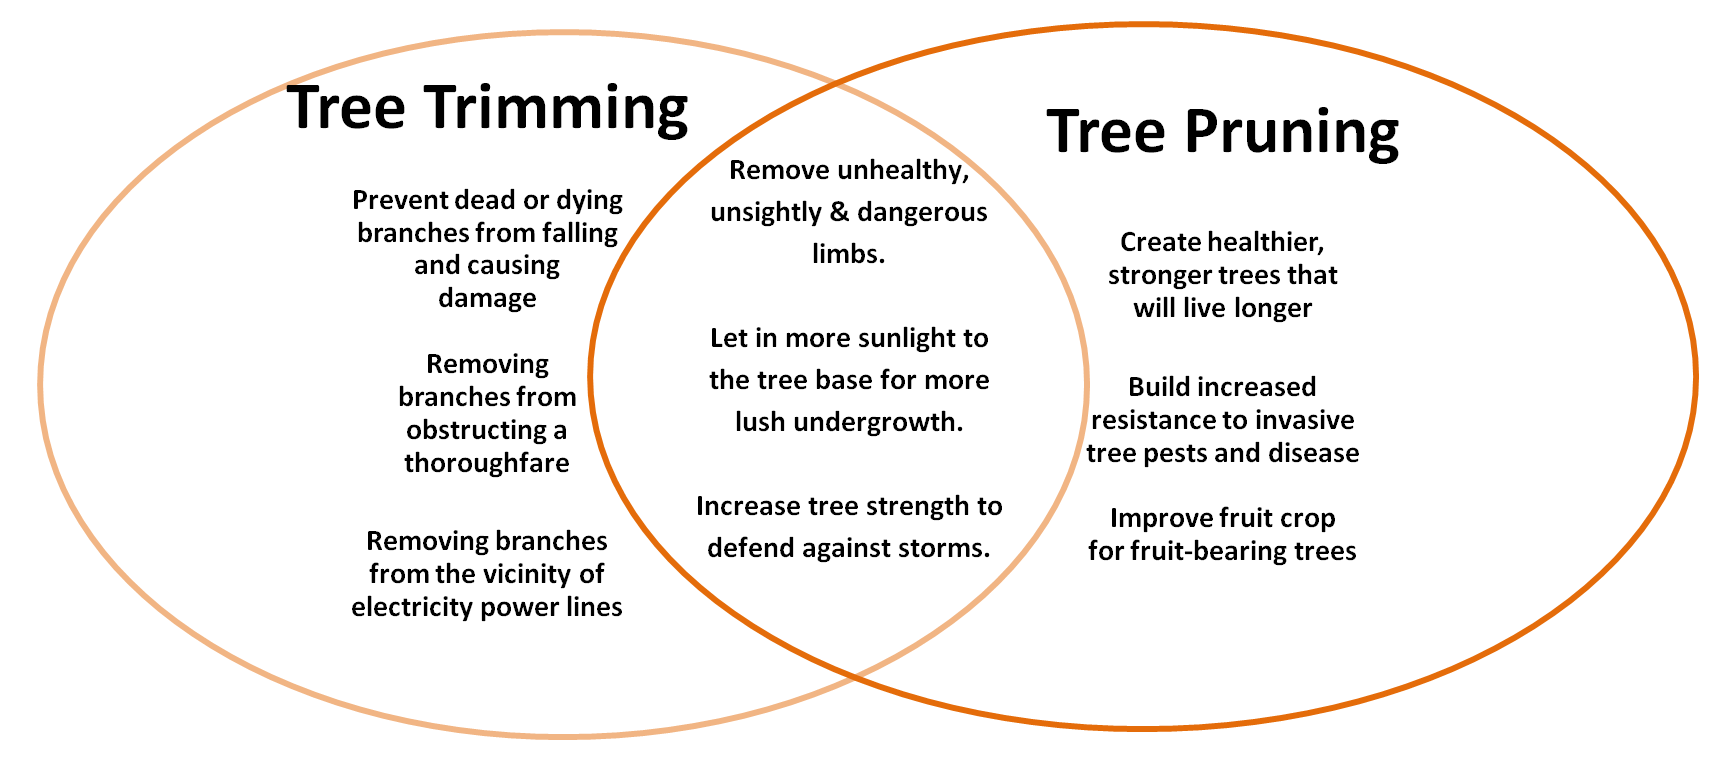 Venn Diagram comparing tree trimming with tree pruning